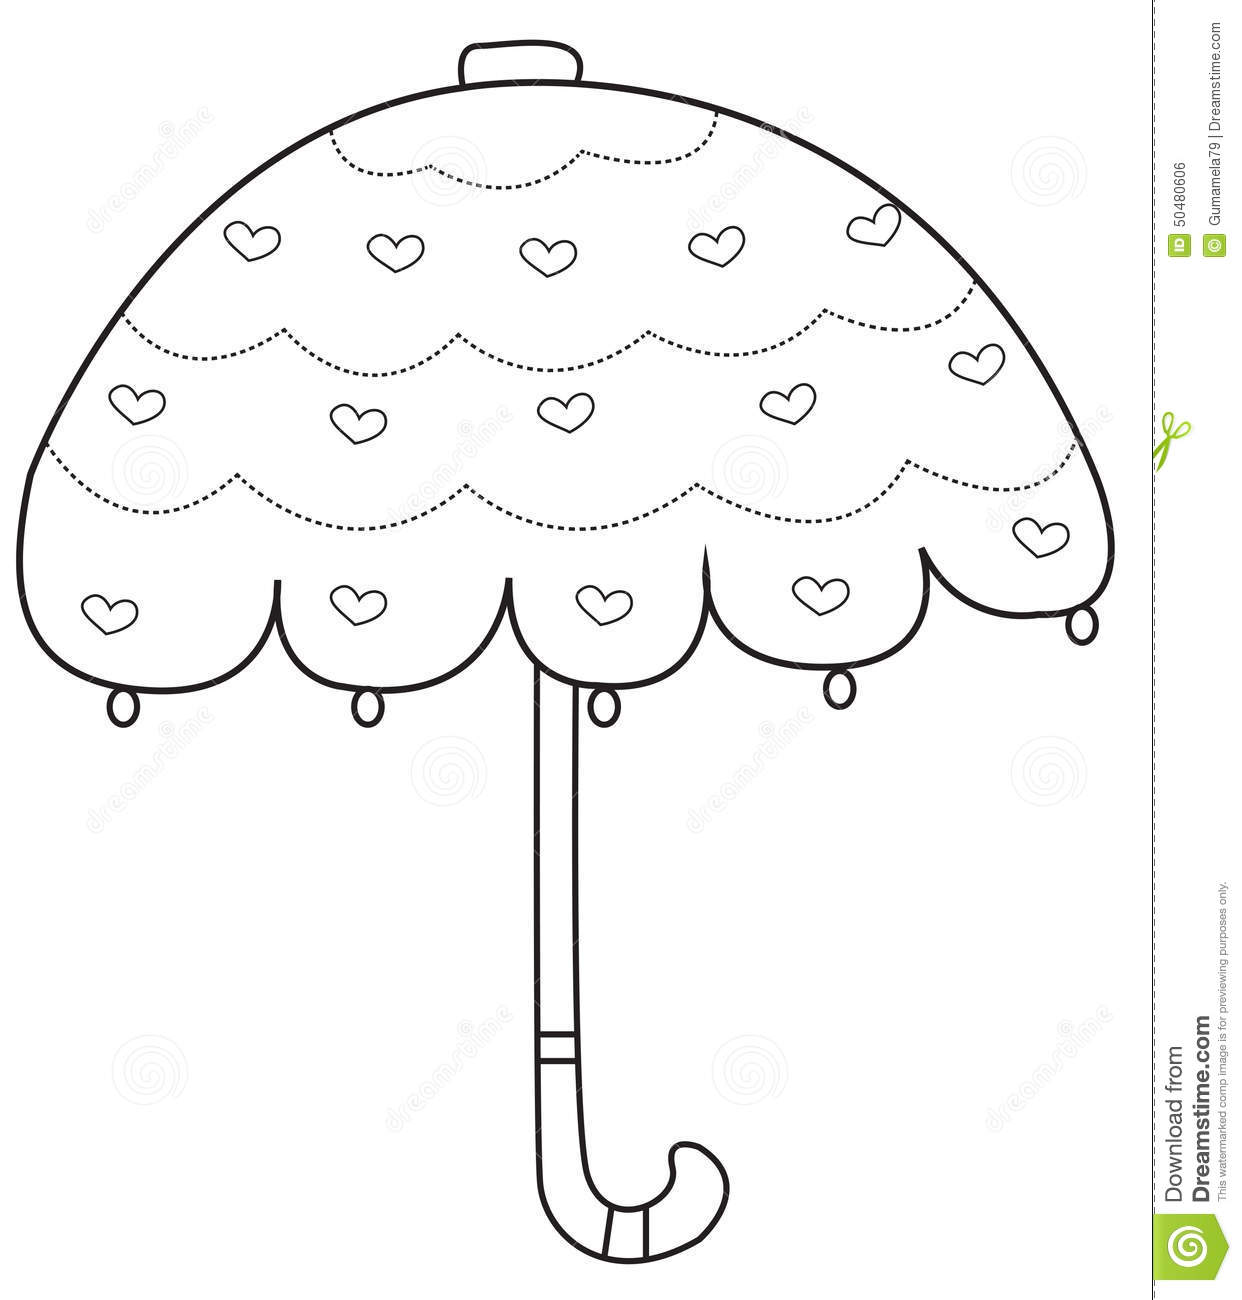 Umbrella Coloring Download Umbrella Coloring